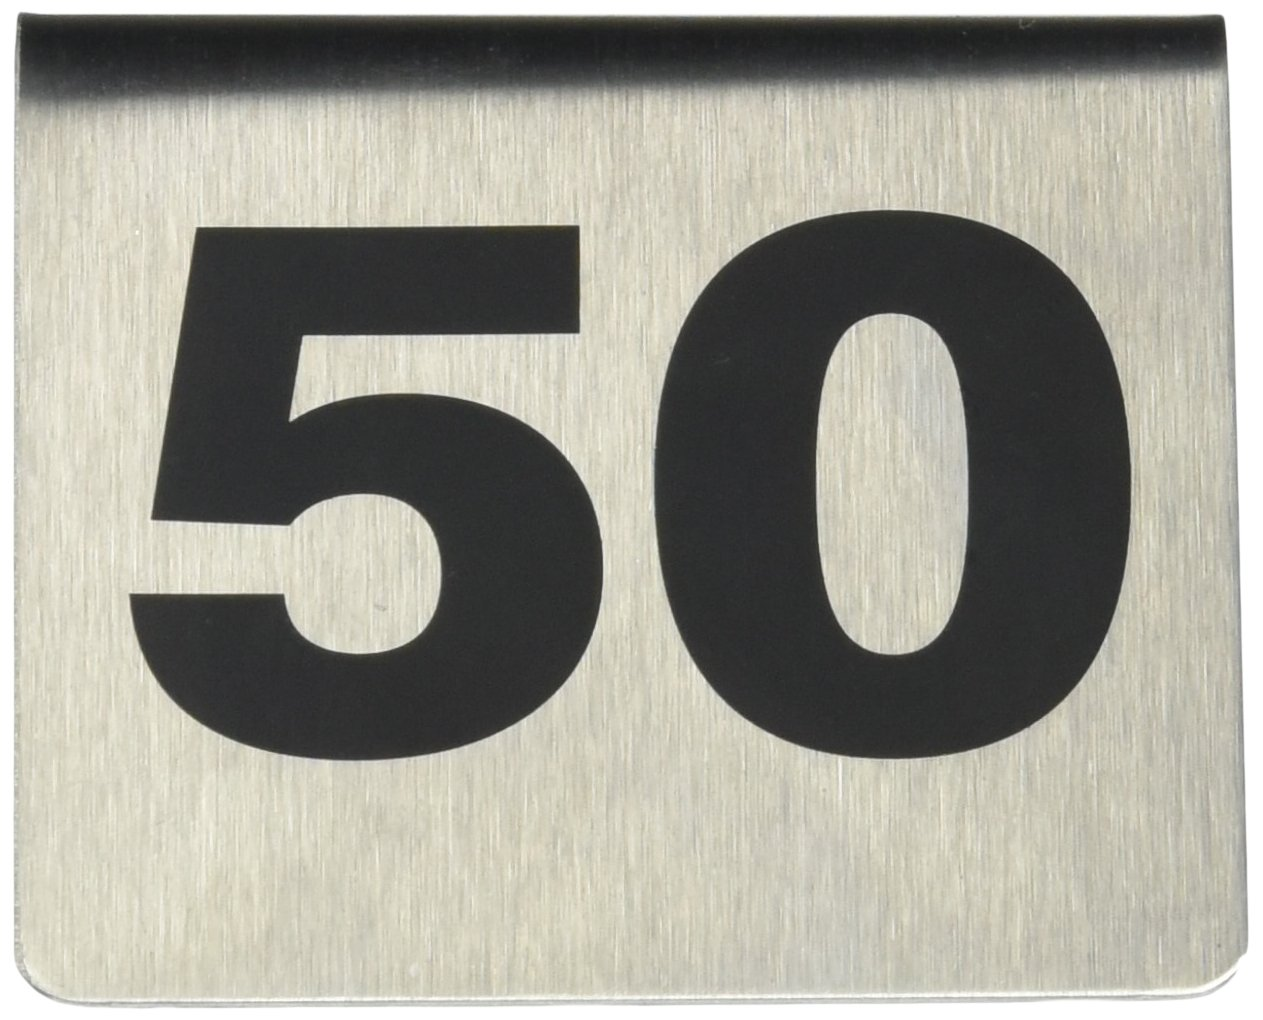 TableCraft Products T150 1-50 Stainless Steel Number Tents